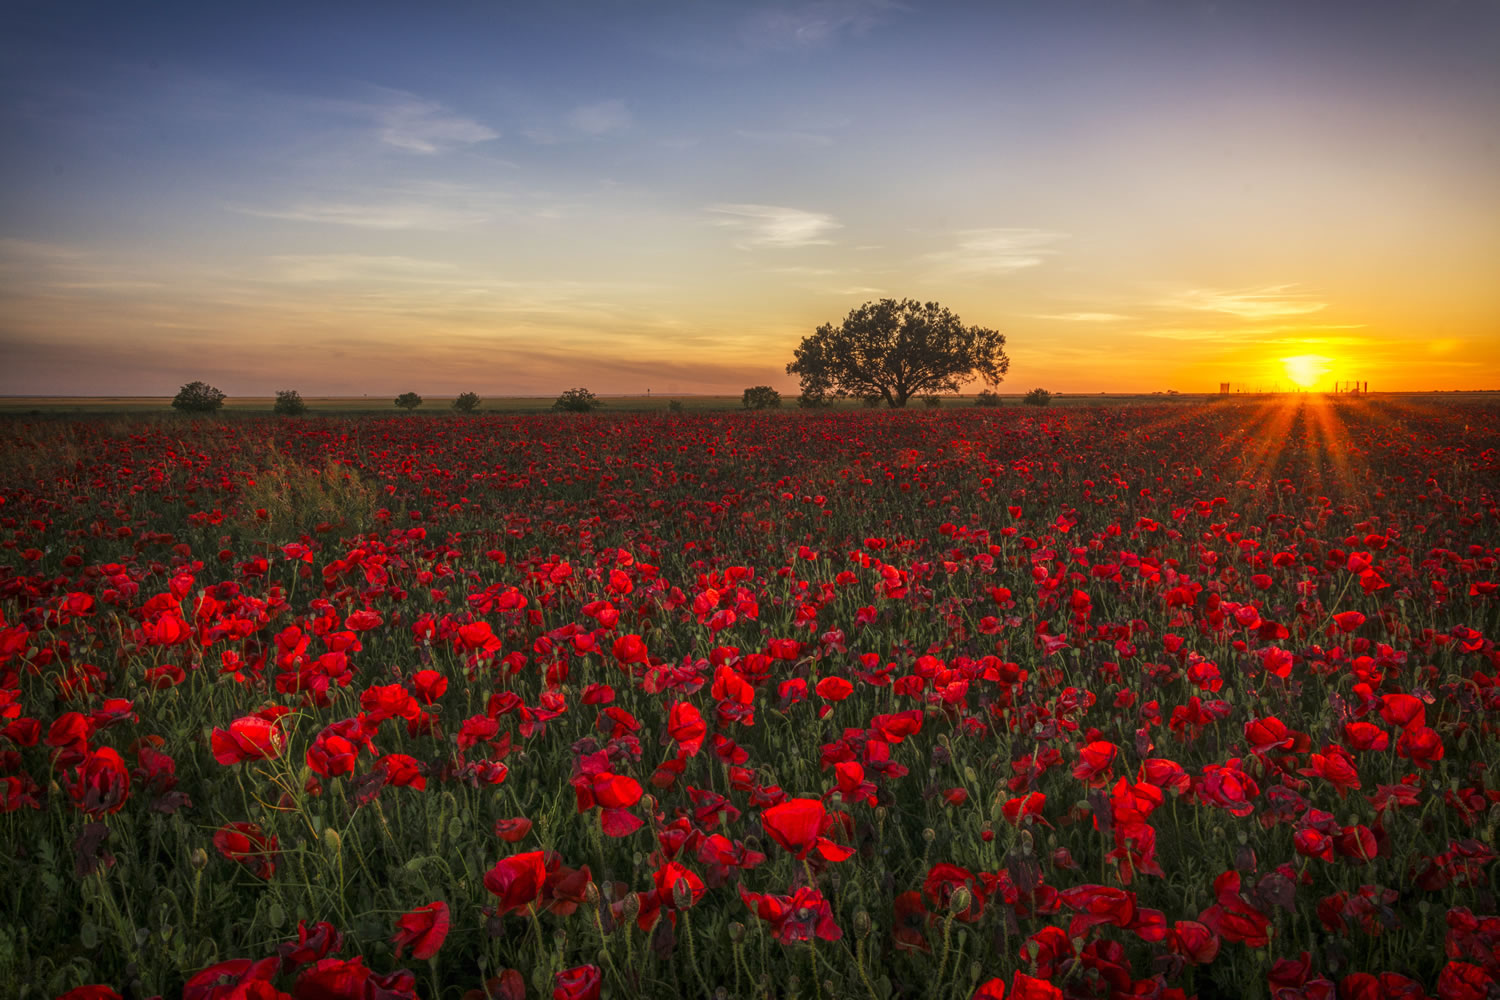 Poppy Field At Dusk Wallpaper Mural